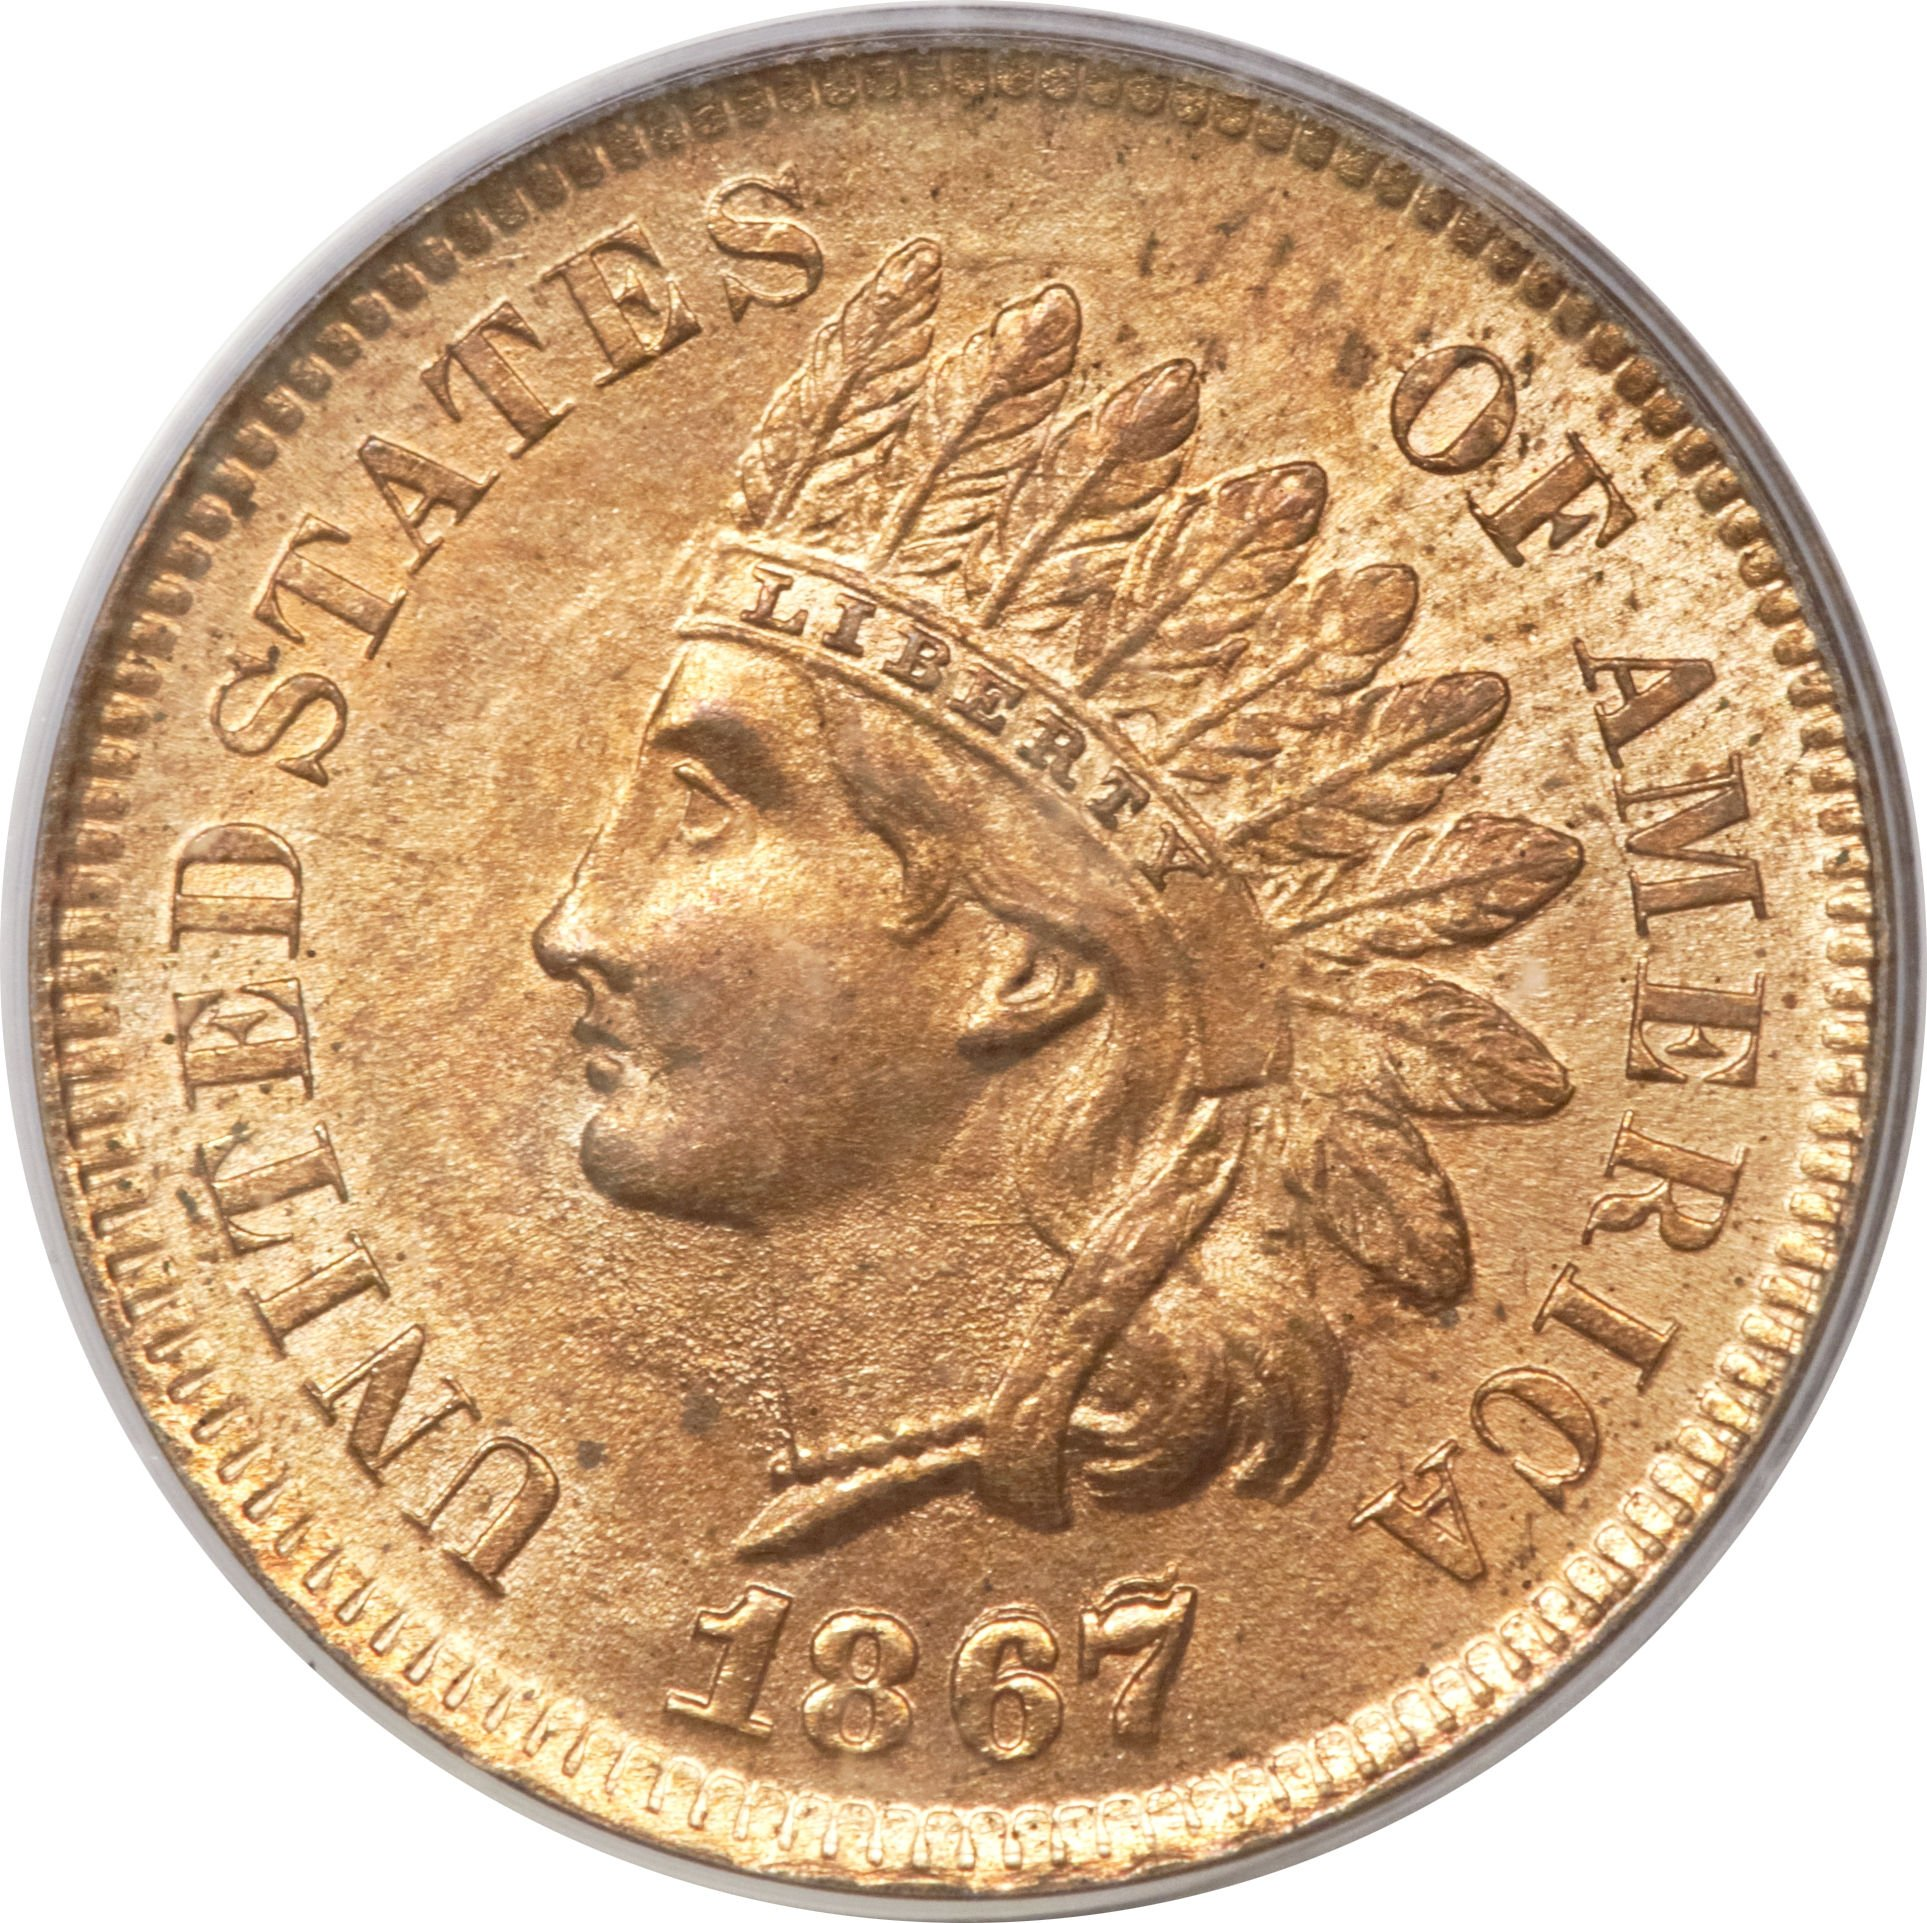 1867 RPD-001 Indian Head Penny - Photo Courtesy of Heritage Auctions